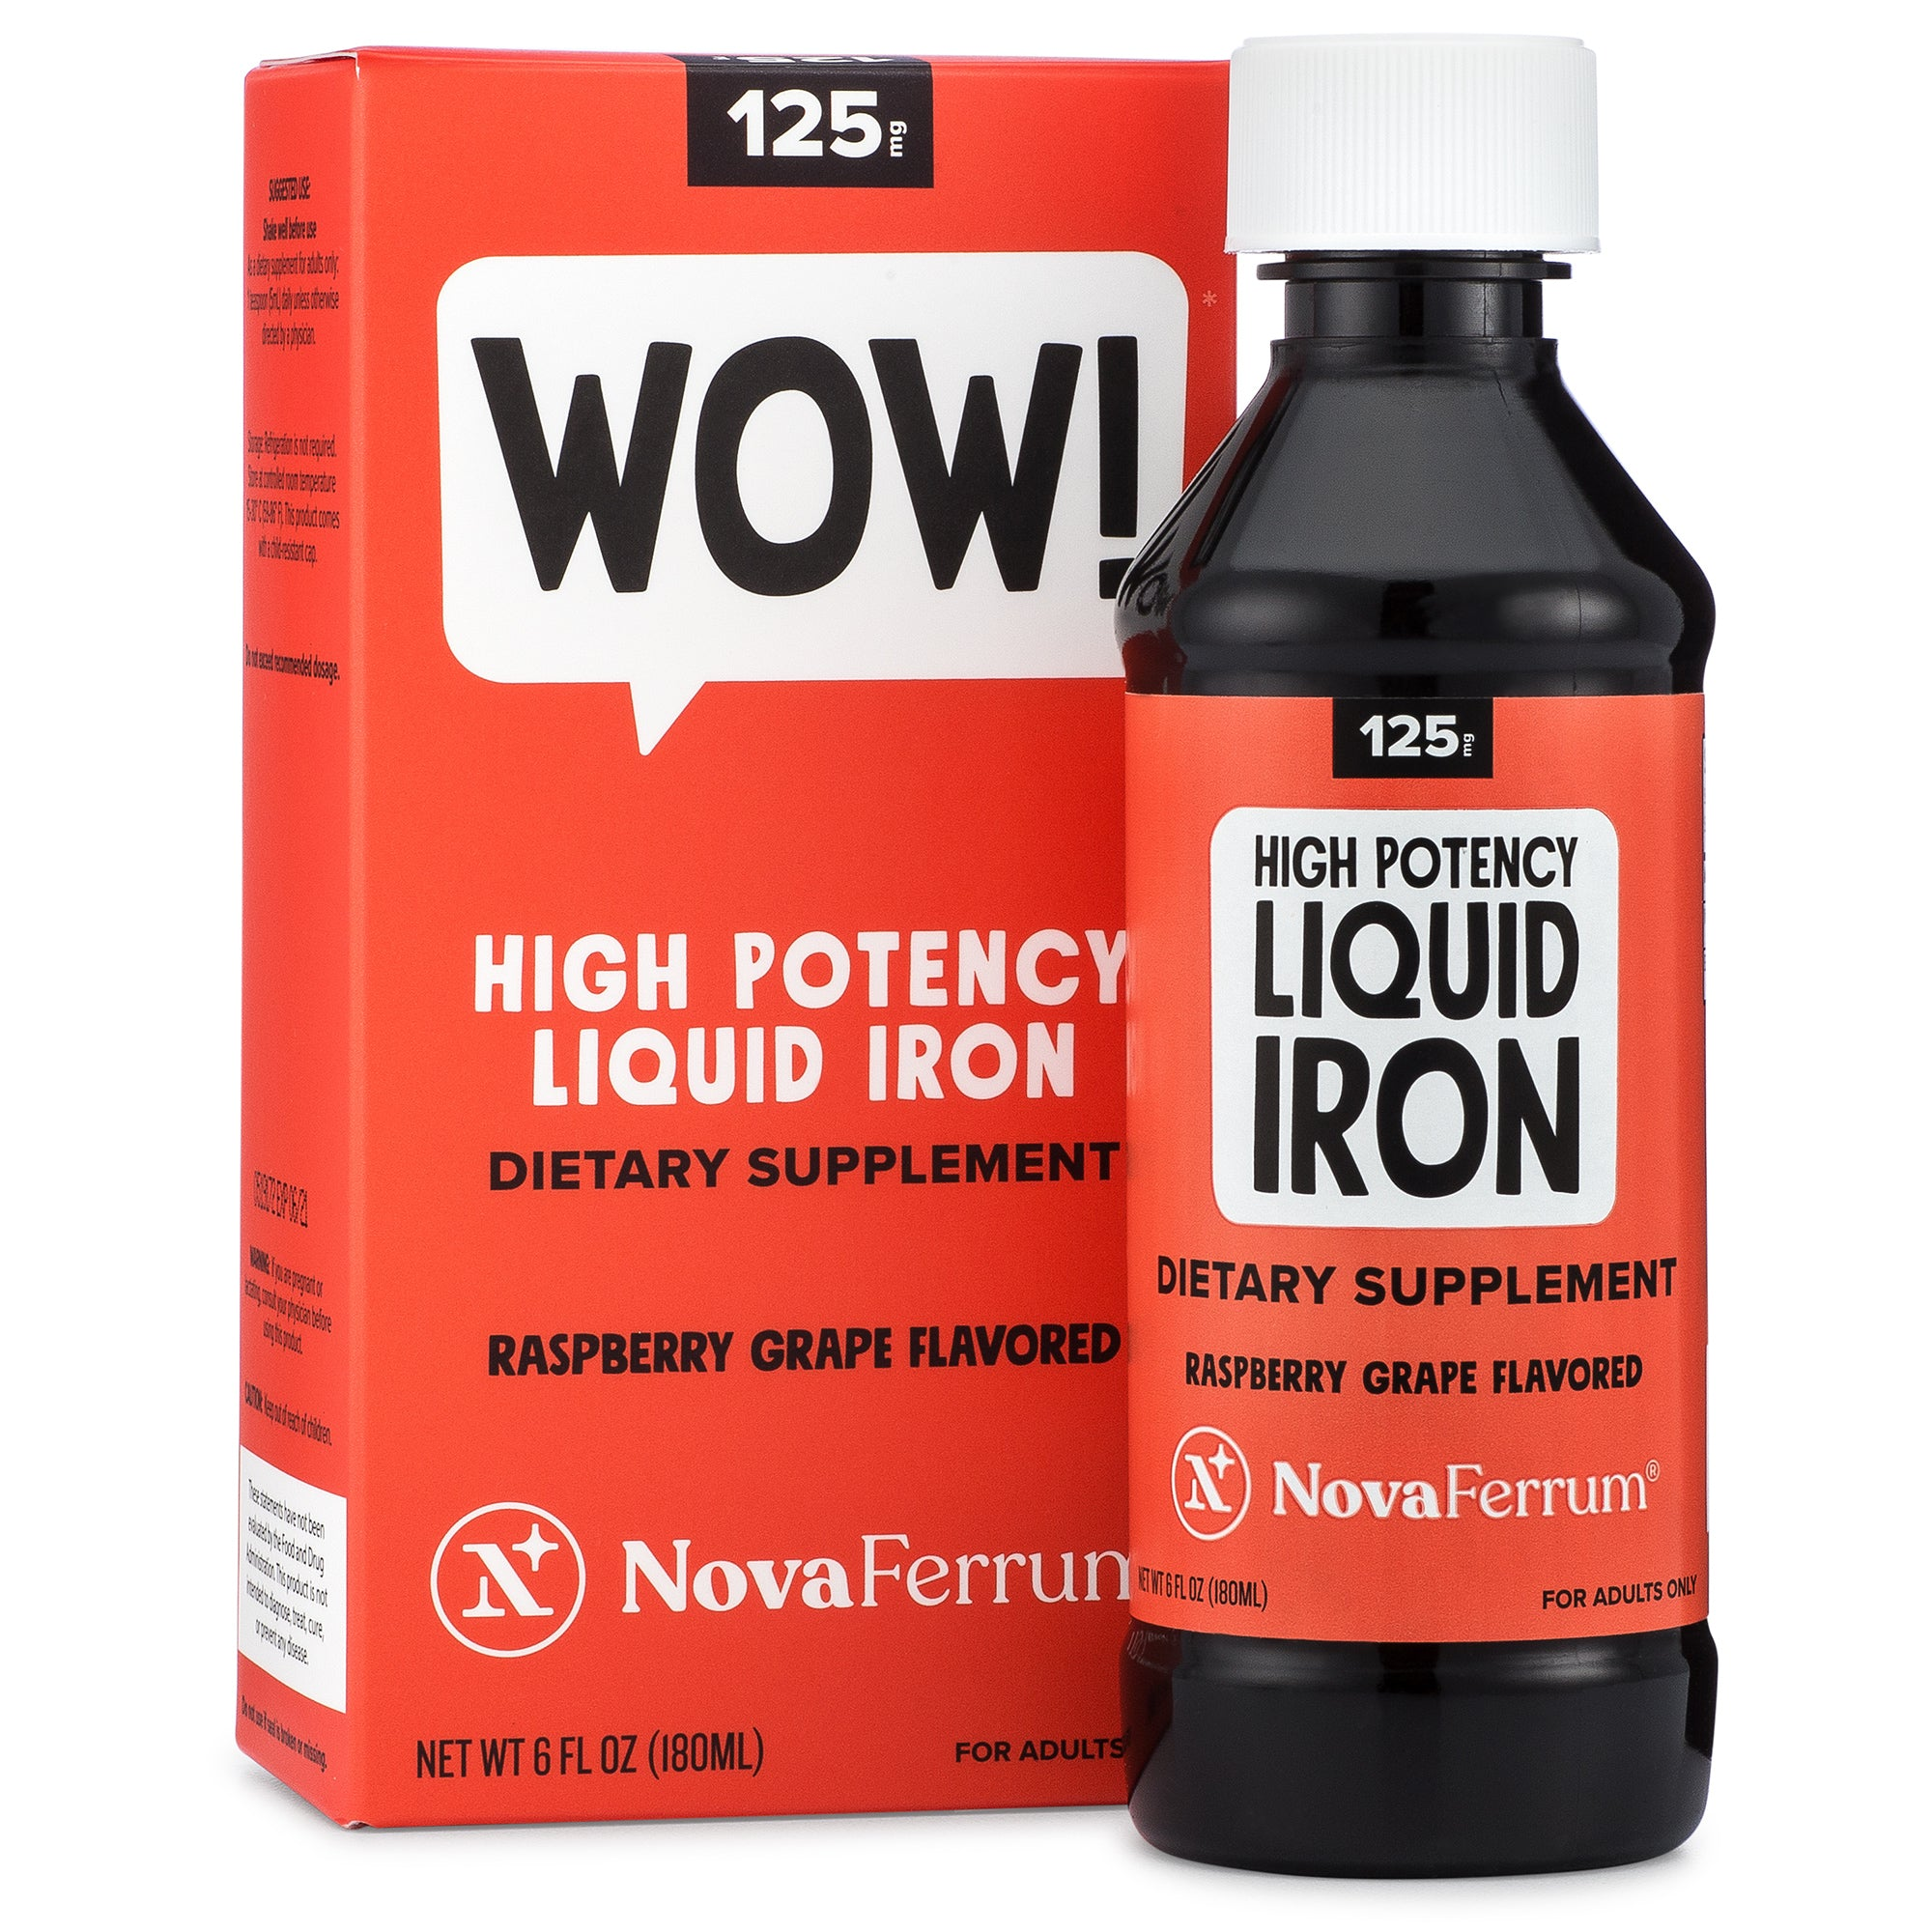 NovaFerrum 125 High Potency Liquid Iron